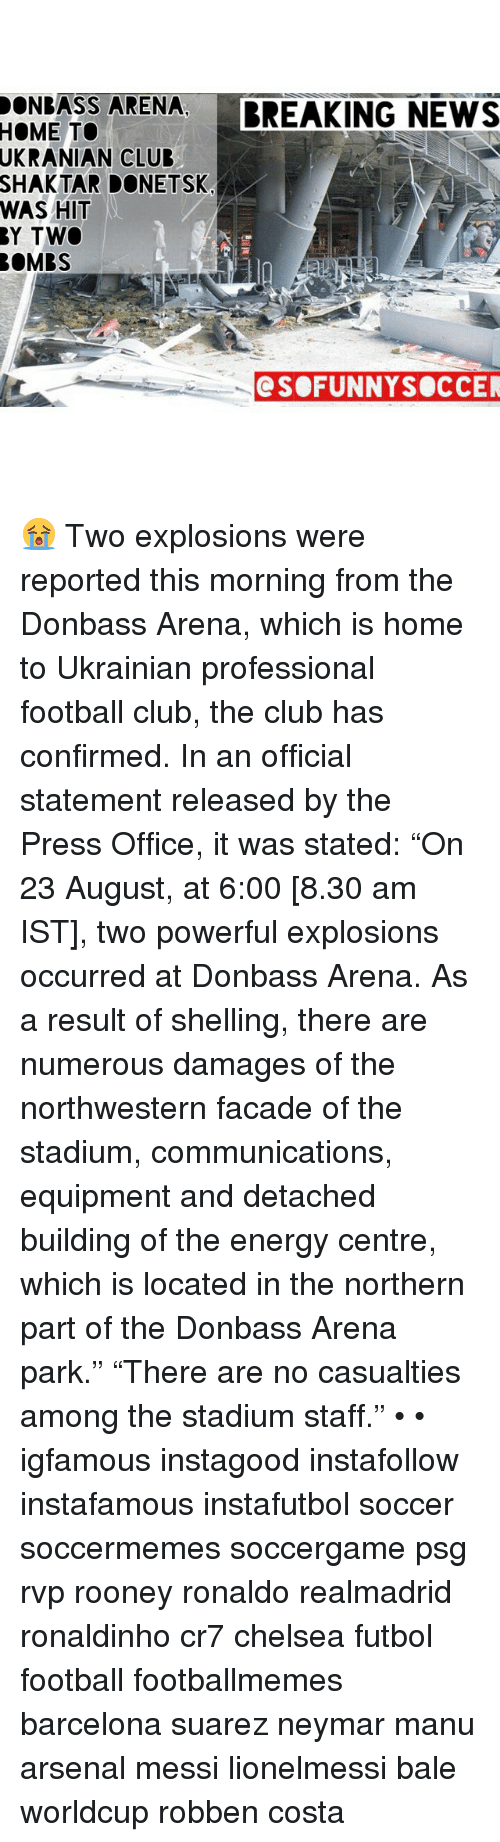 """funny soccer: DON BASS ARENA  BREAKING NEWS  HOME TO  UKRANIAN CLUB  SHAKTAR DONE TSK  WAS HIT  BY TWO  BOMBS  SO FUNNY SOCCER 😭 Two explosions were reported this morning from the Donbass Arena, which is home to Ukrainian professional football club, the club has confirmed. In an official statement released by the Press Office, it was stated: """"On 23 August, at 6:00 [8.30 am IST], two powerful explosions occurred at Donbass Arena. As a result of shelling, there are numerous damages of the northwestern facade of the stadium, communications, equipment and detached building of the energy centre, which is located in the northern part of the Donbass Arena park."""" """"There are no casualties among the stadium staff."""" • • igfamous instagood instafollow instafamous instafutbol soccer soccermemes soccergame psg rvp rooney ronaldo realmadrid ronaldinho cr7 chelsea futbol football footballmemes barcelona suarez neymar manu arsenal messi lionelmessi bale worldcup robben costa"""